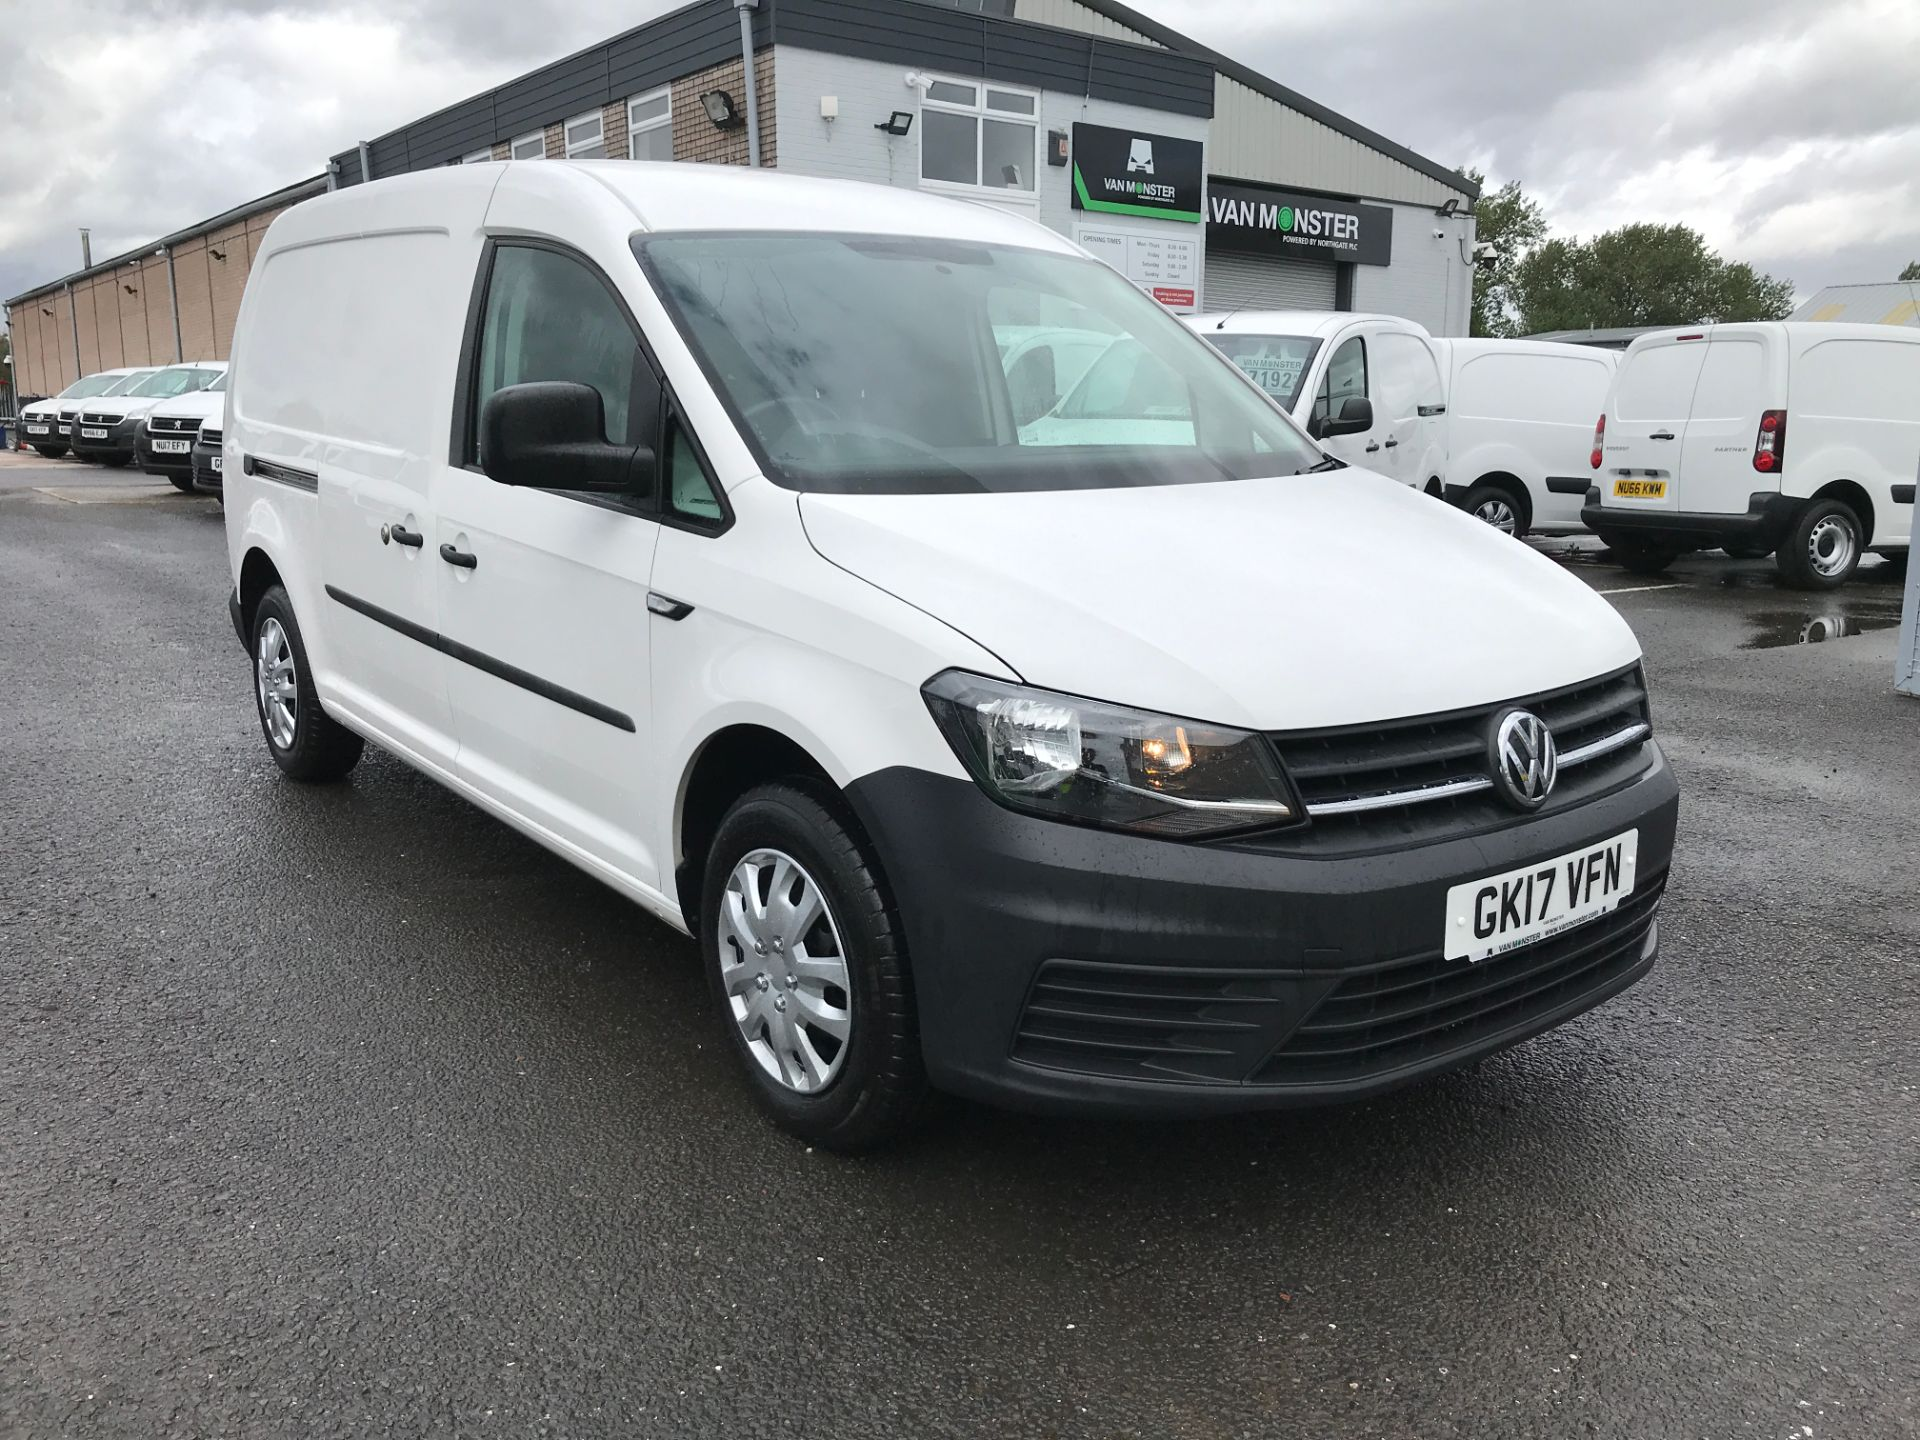 2017 Volkswagen Caddy Maxi 2.0TDI BLUEMOTION TECH 102PS STARTLINE EURO 6 (GK17VFN)